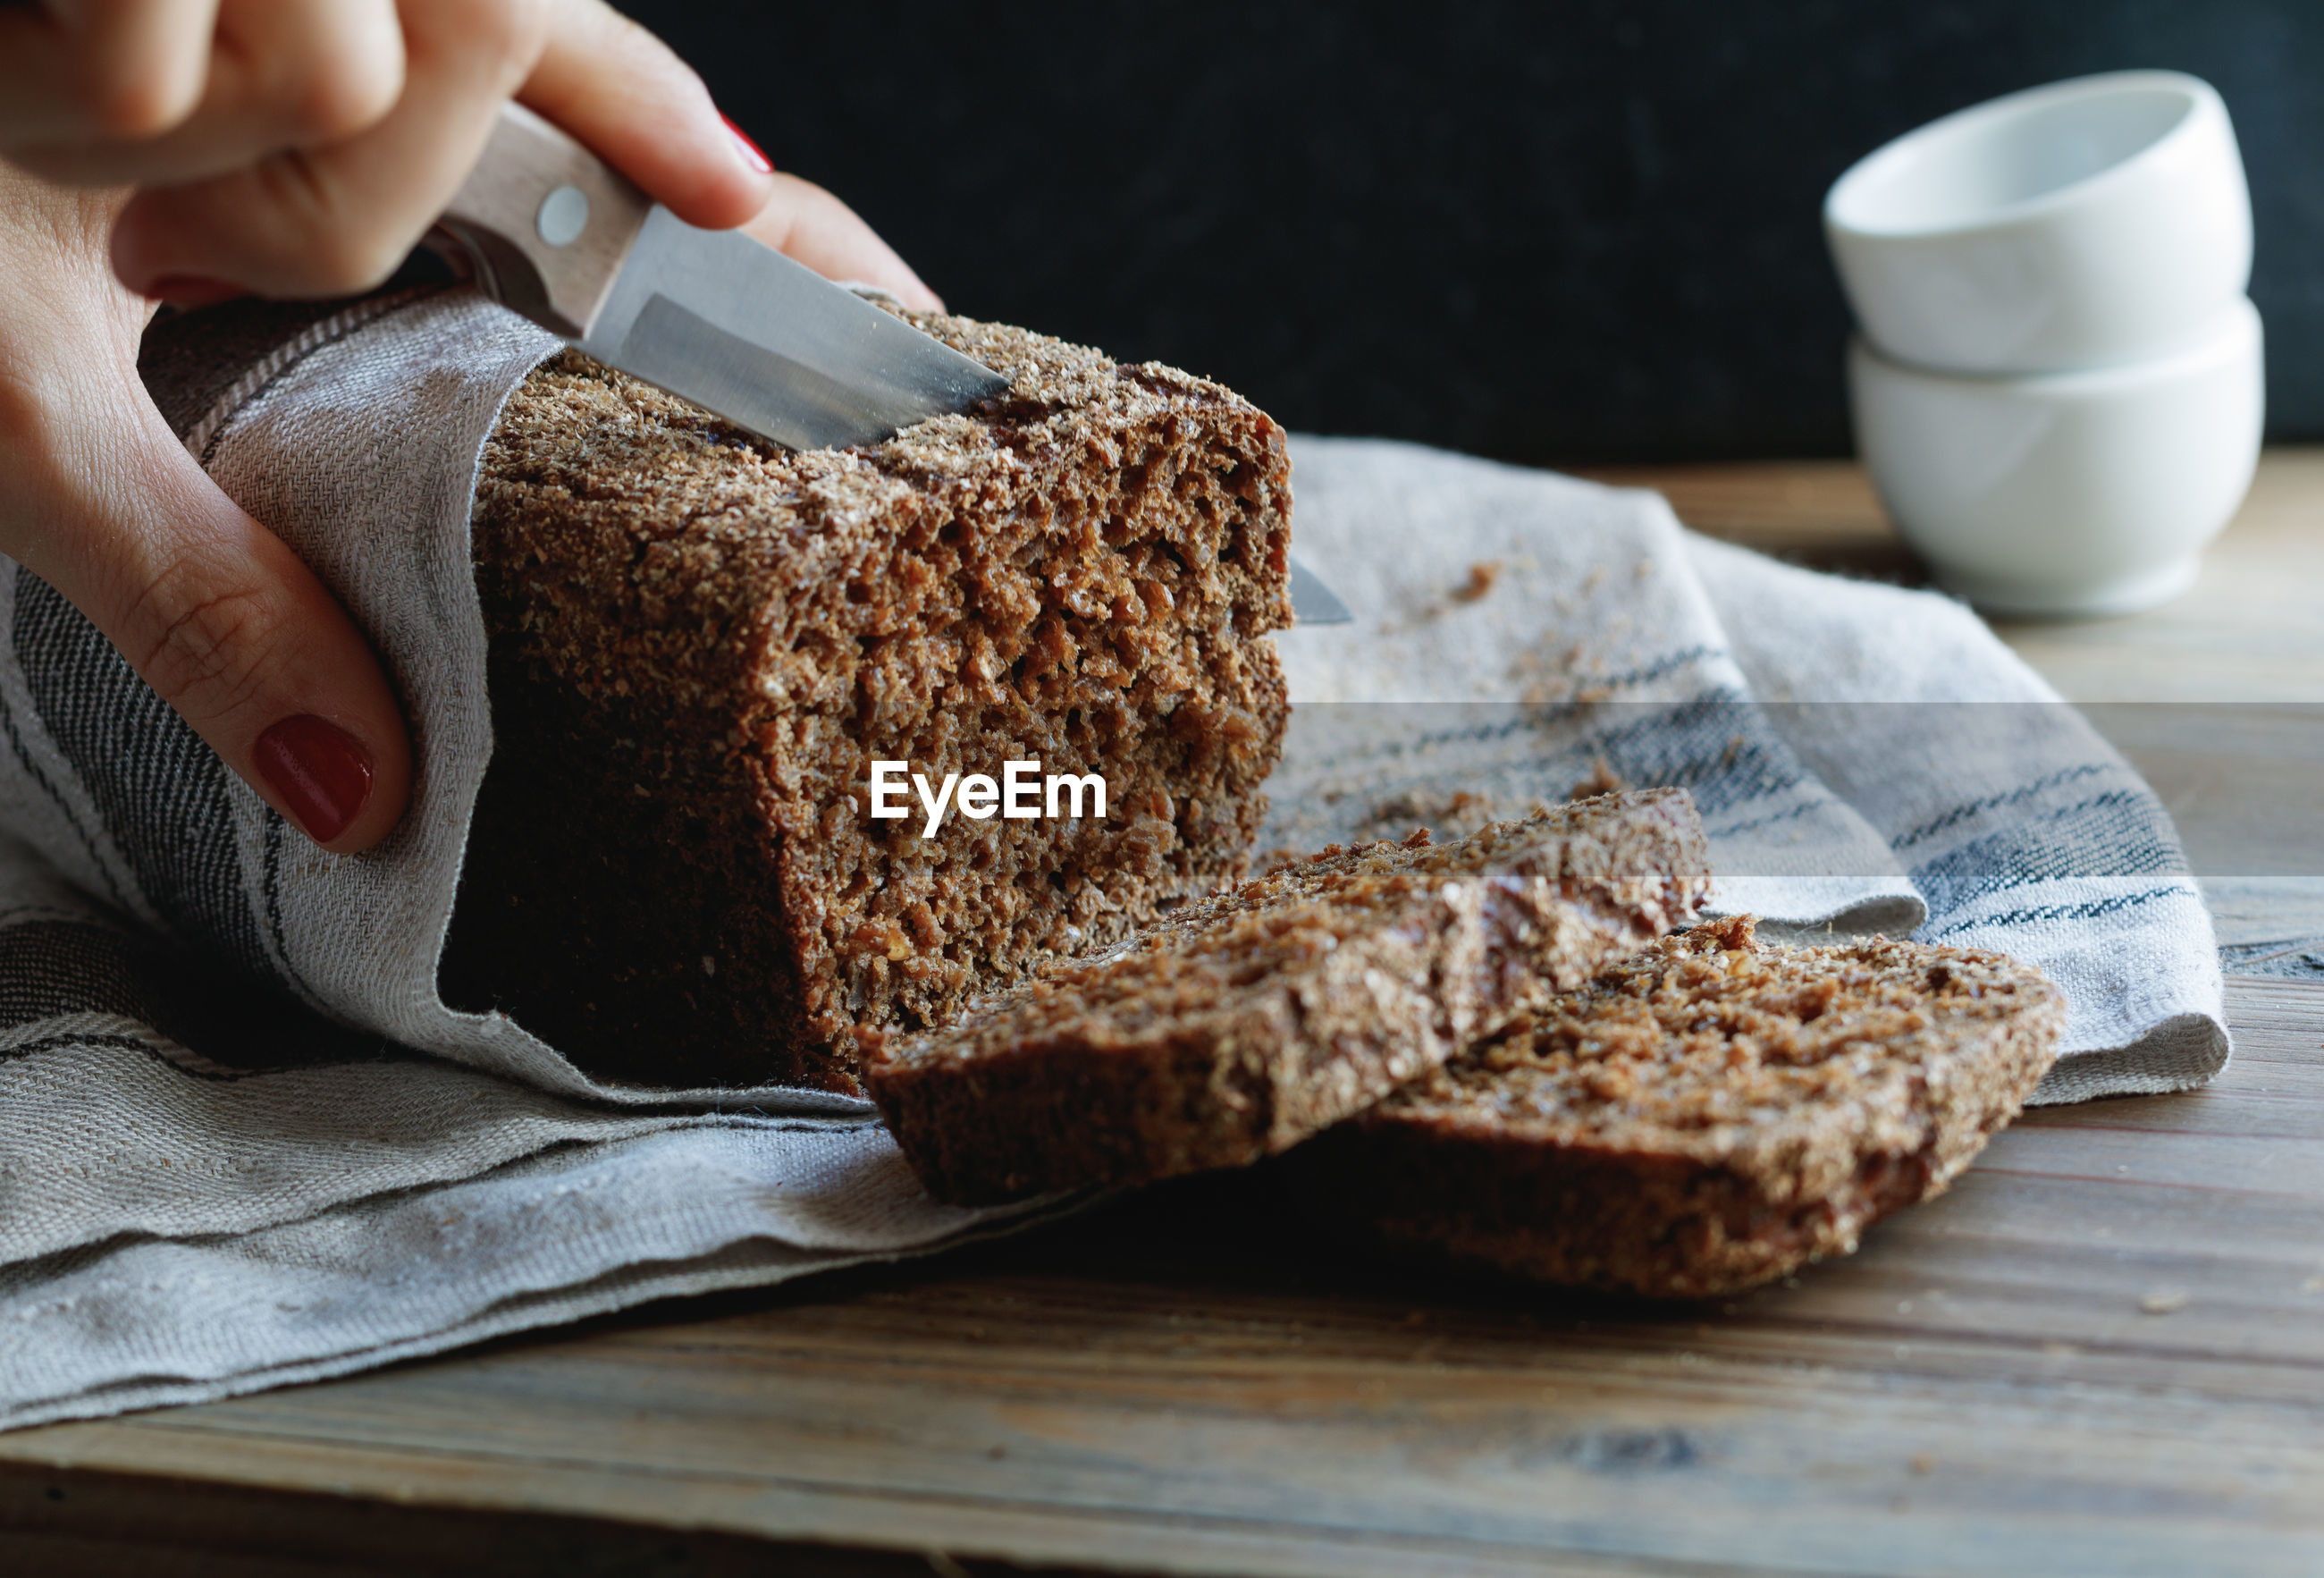 Cropped hand of woman cutting brown bread from knife